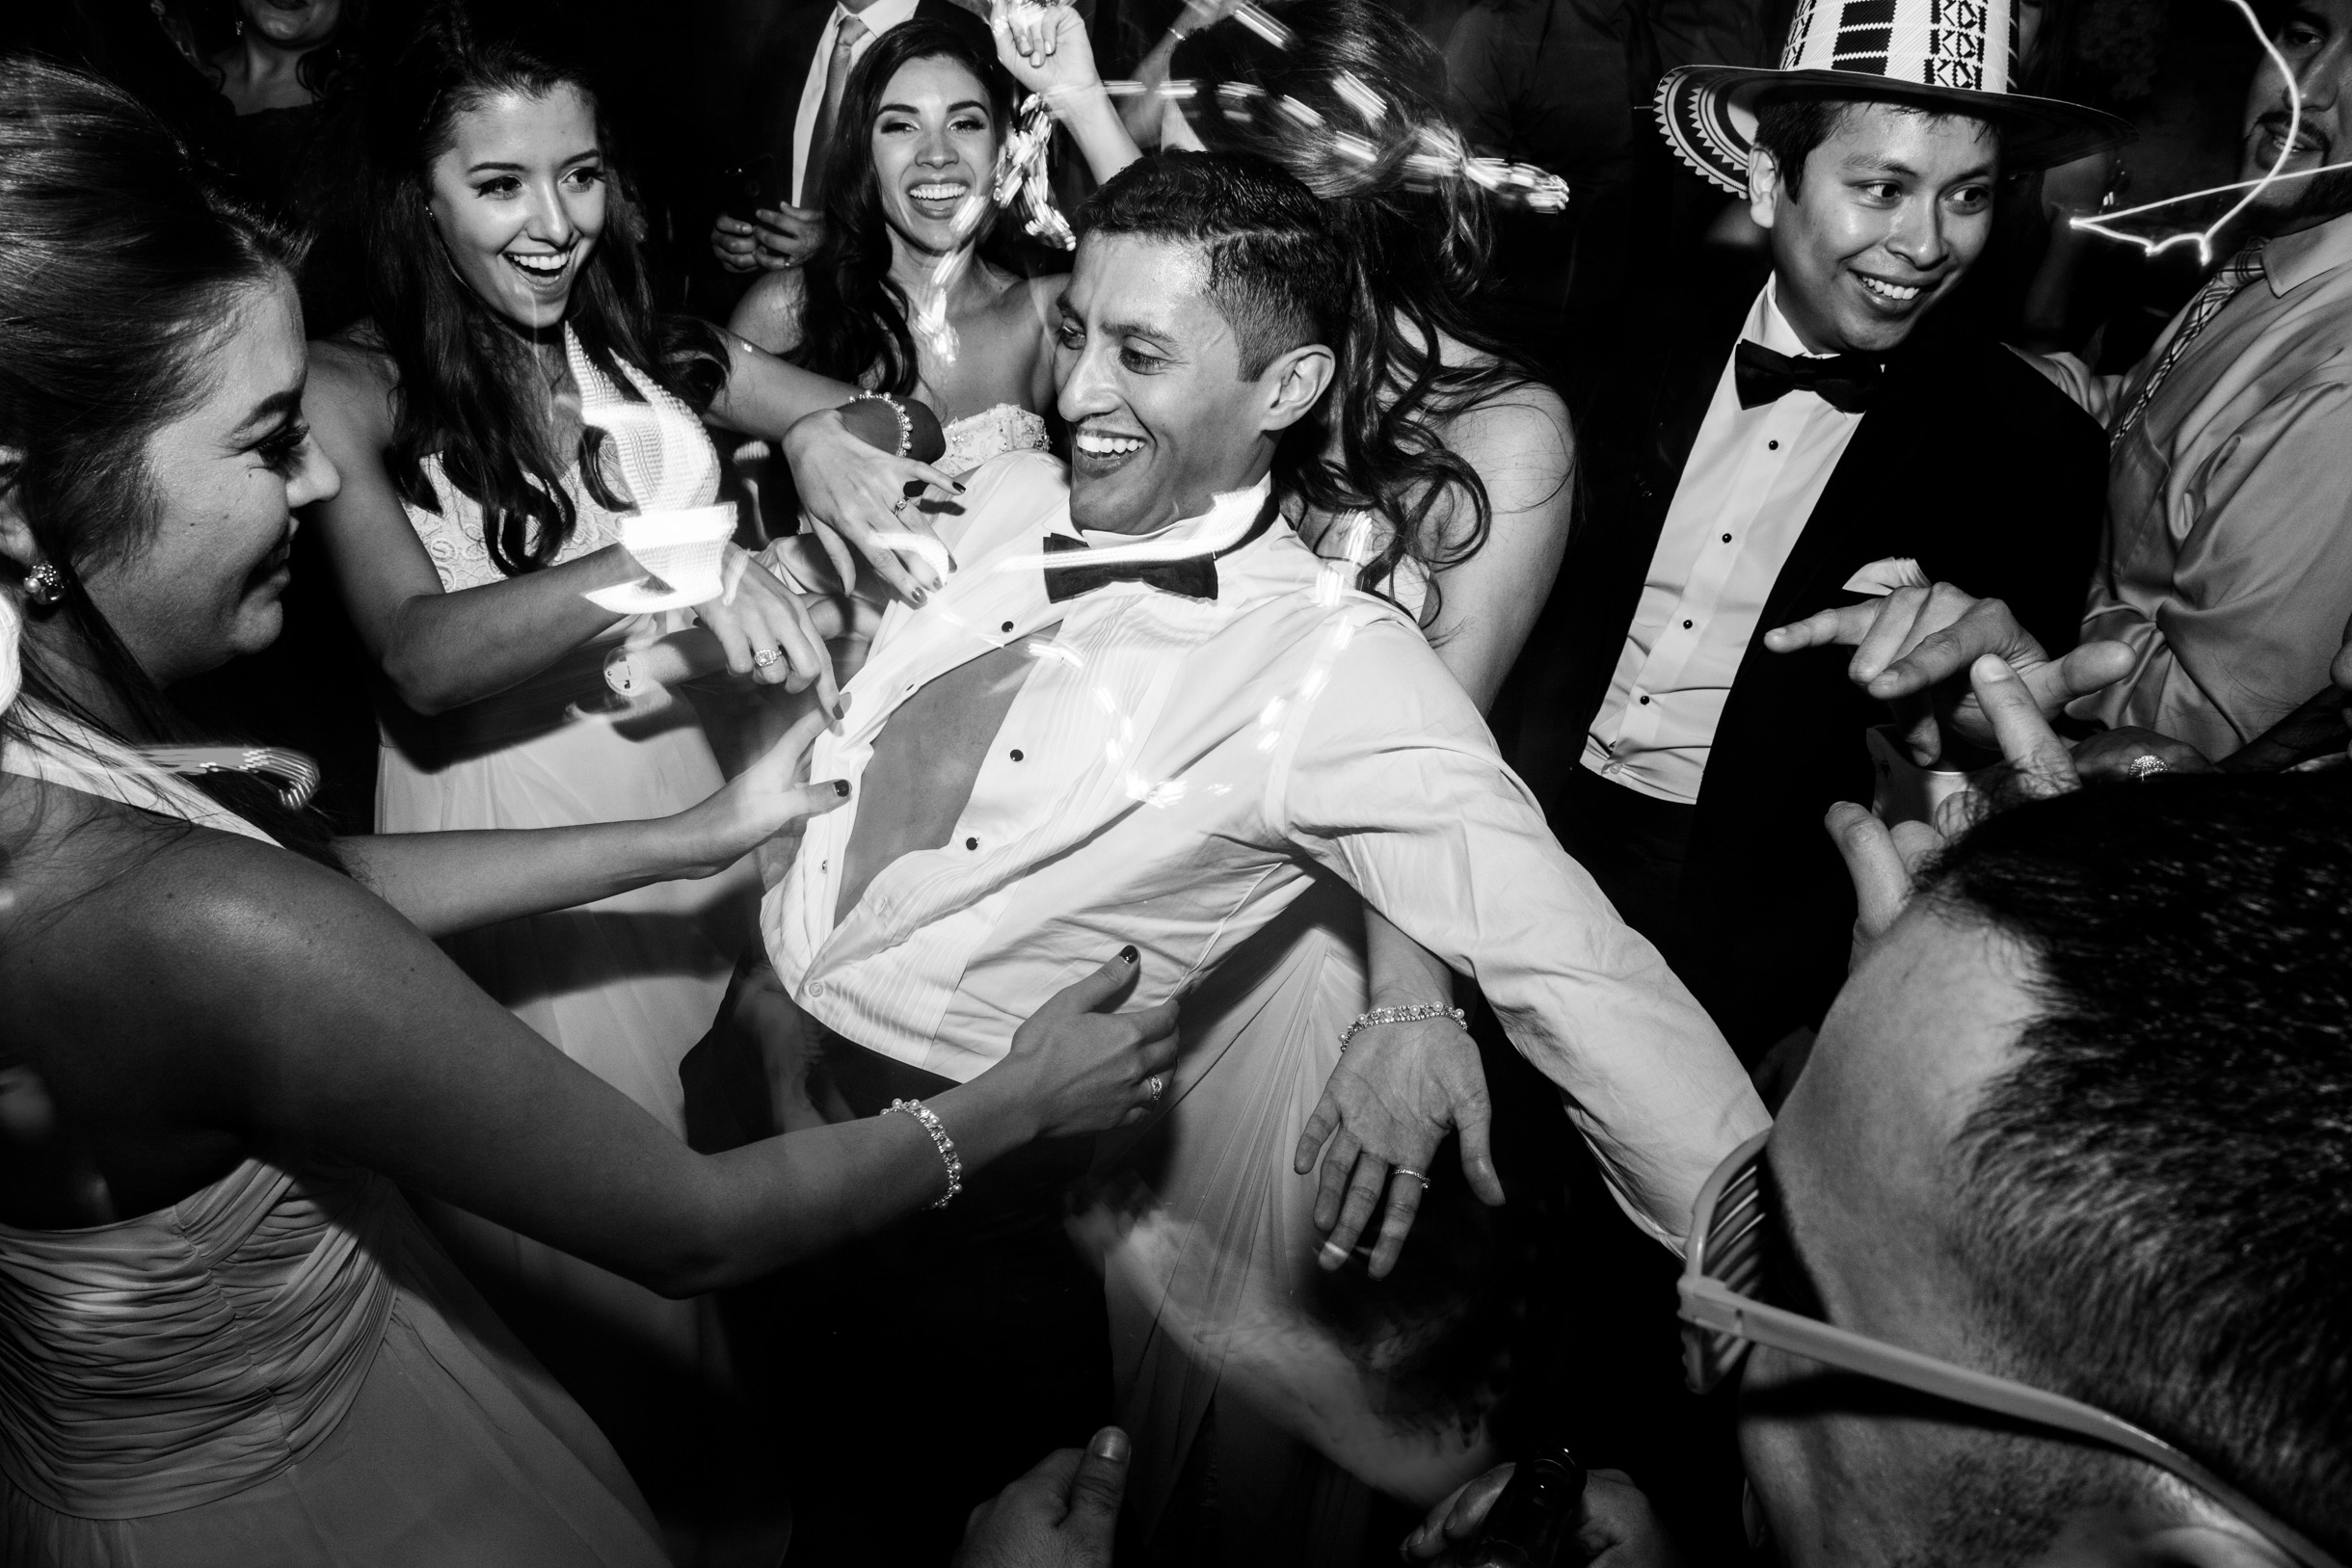 Groom having his shirt ripped off by bridesmaids at wedding reception on the dancefloor-347